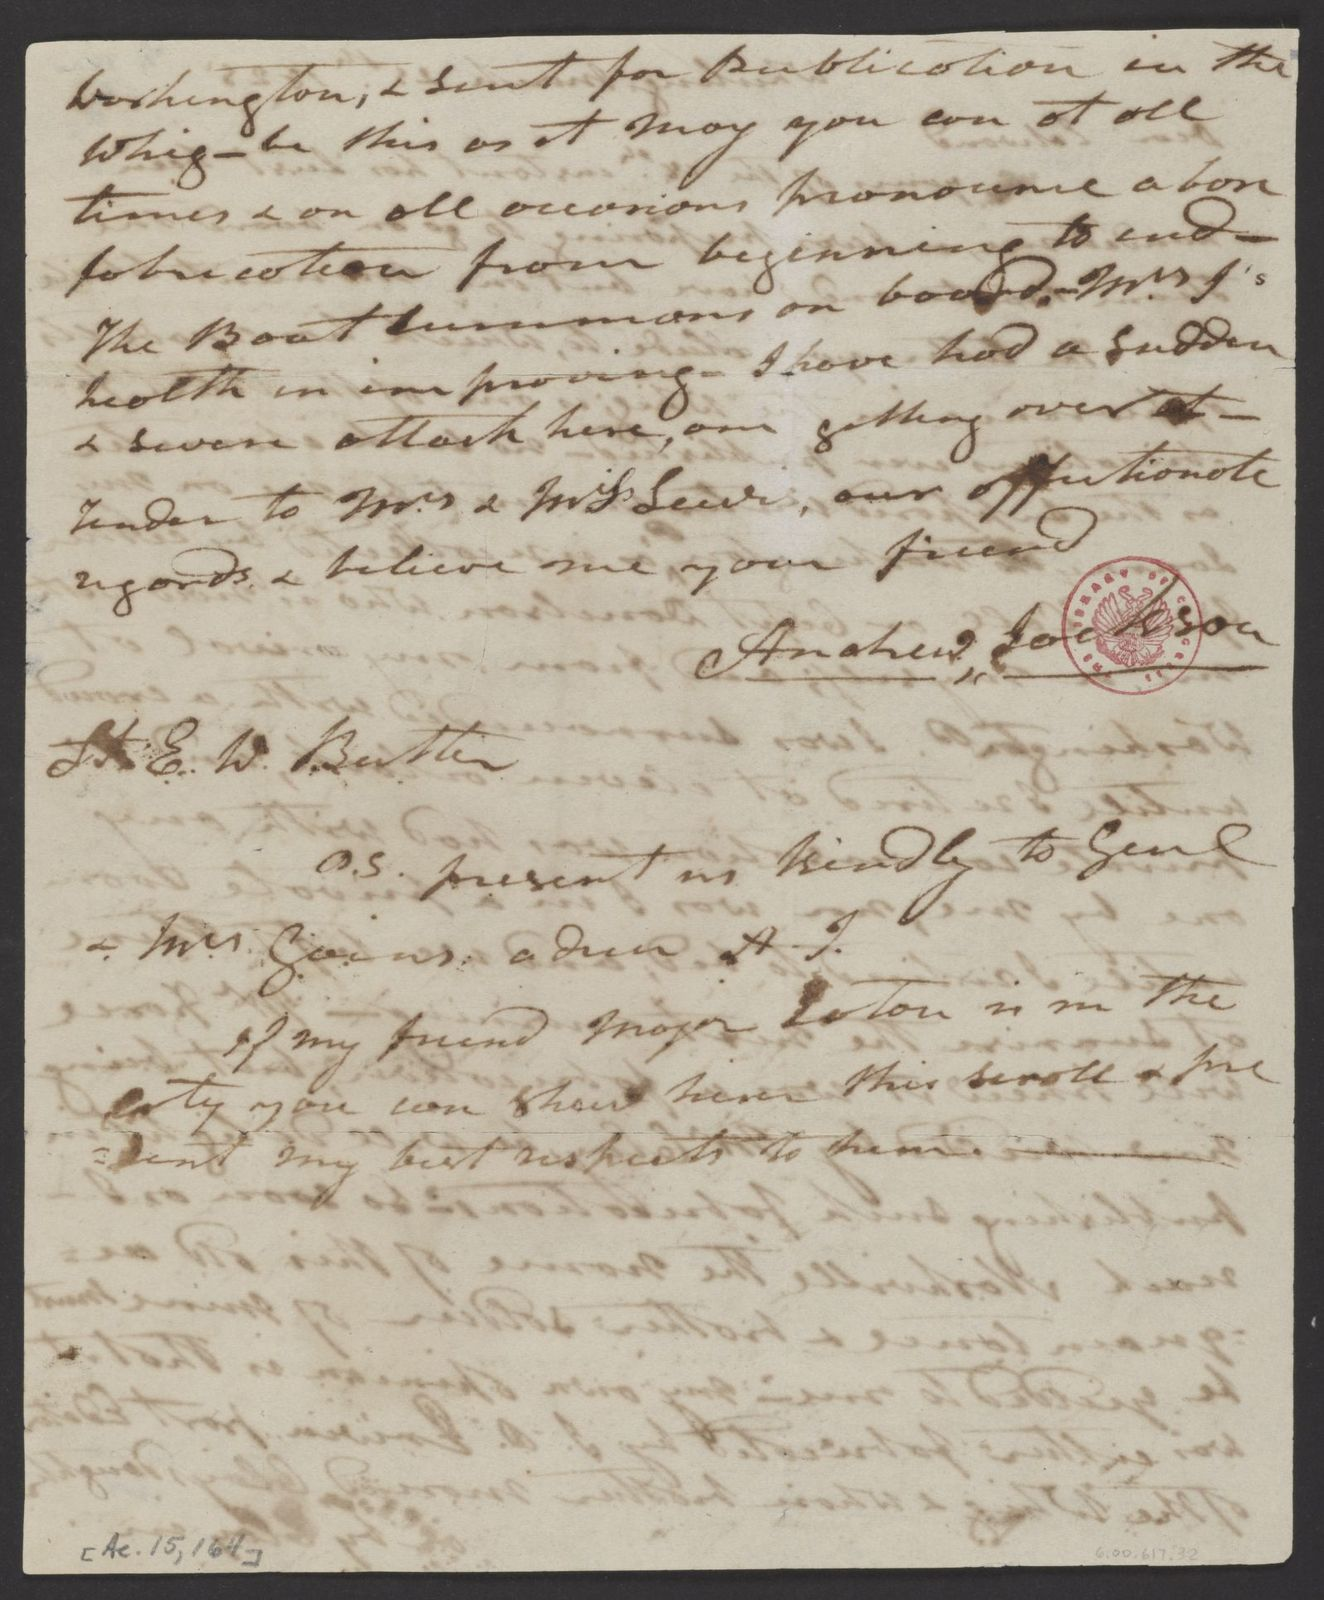 Andrew Jackson to Edward G. W. Butler , March 25, 1825